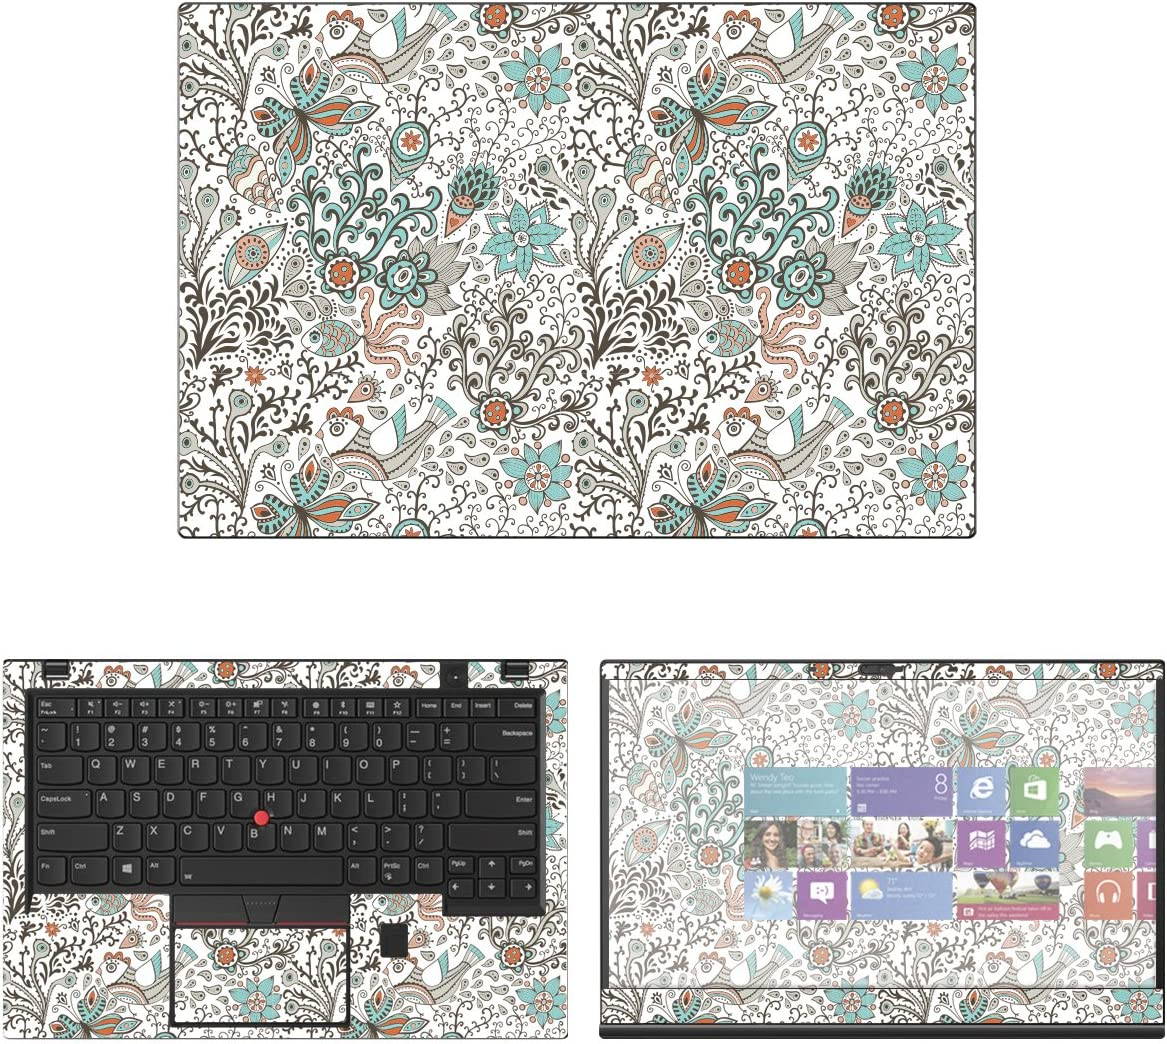 Decalrus - Protective Decal Floral Skin Sticker for Lenovo ThinkPad X1 Carbon (6th Gen.) (14